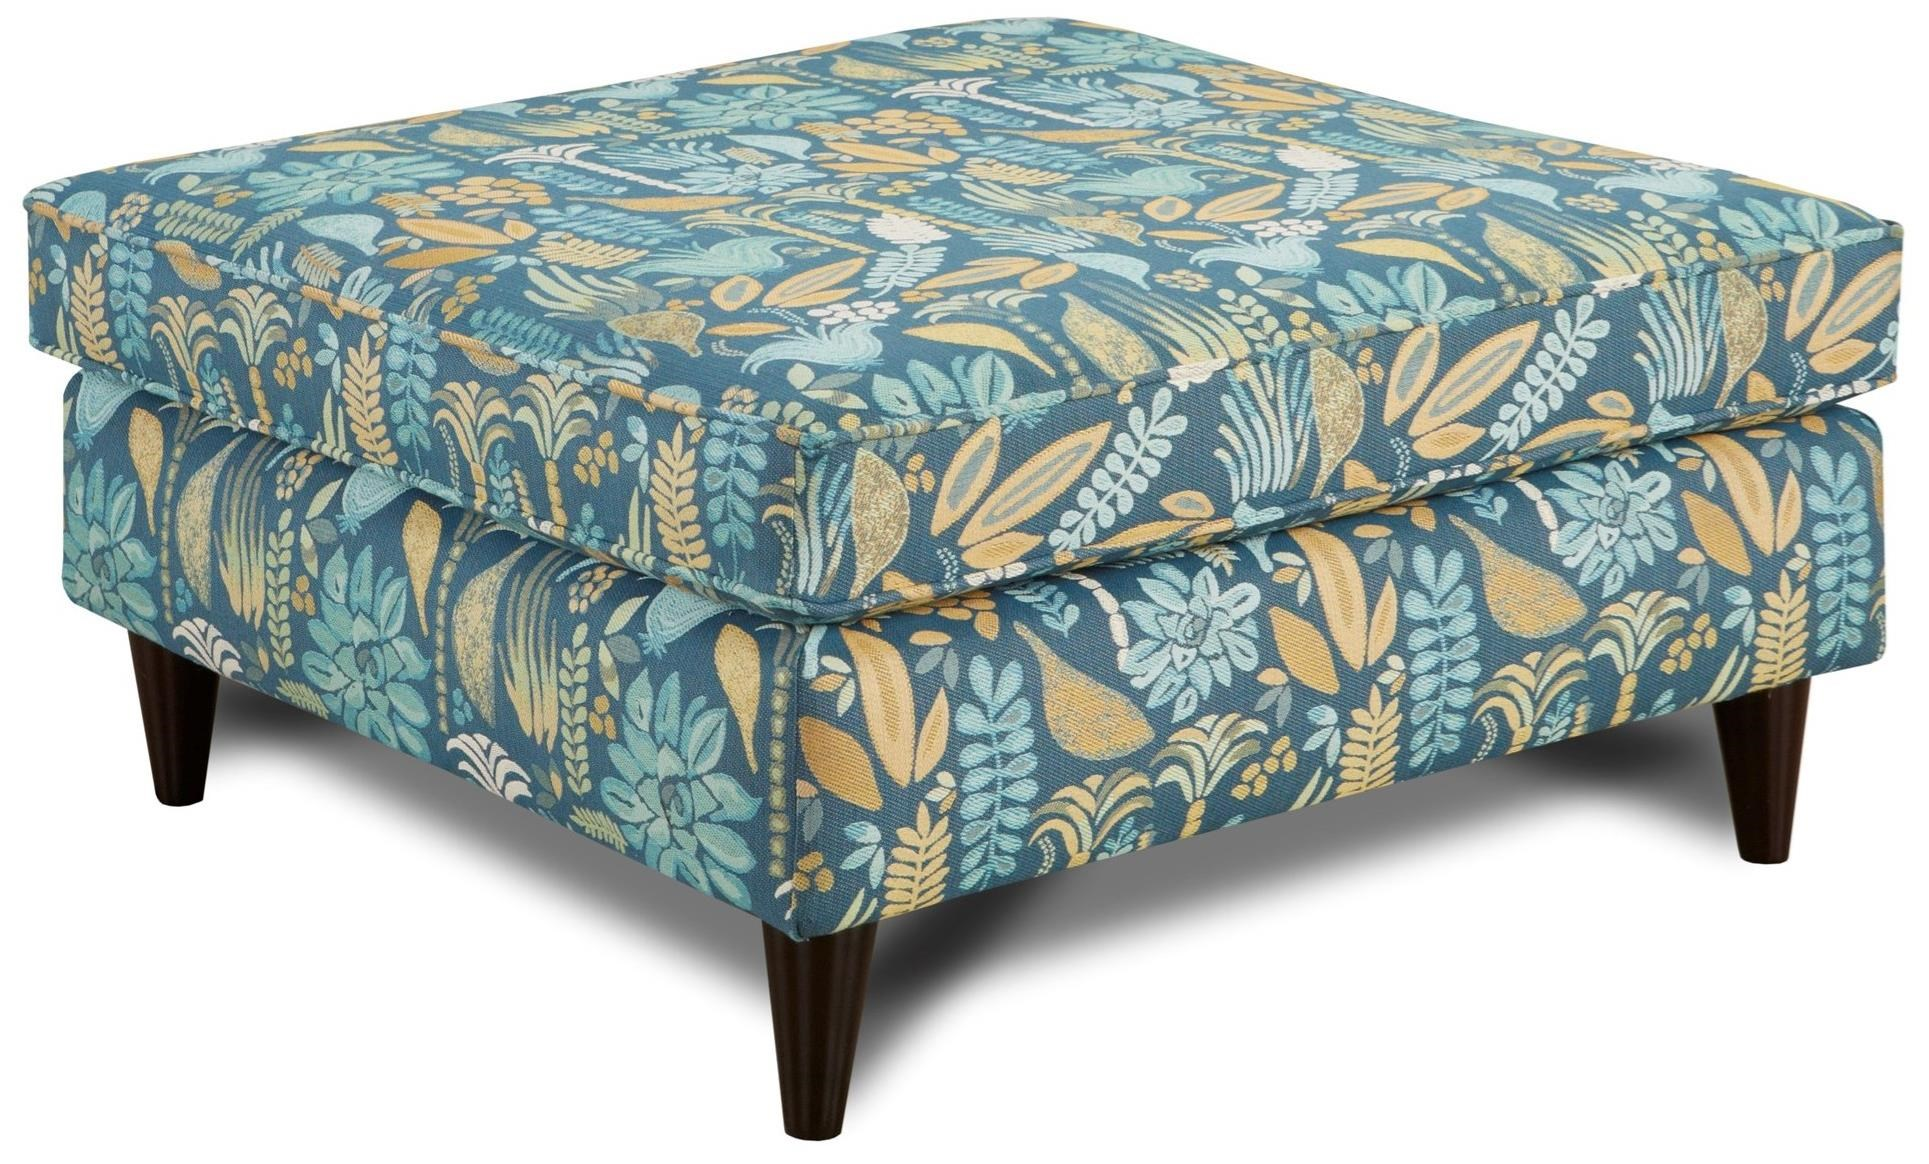 Fusion Furniture 170 Ottoman - Item Number: 170JB Rainforest Calypso